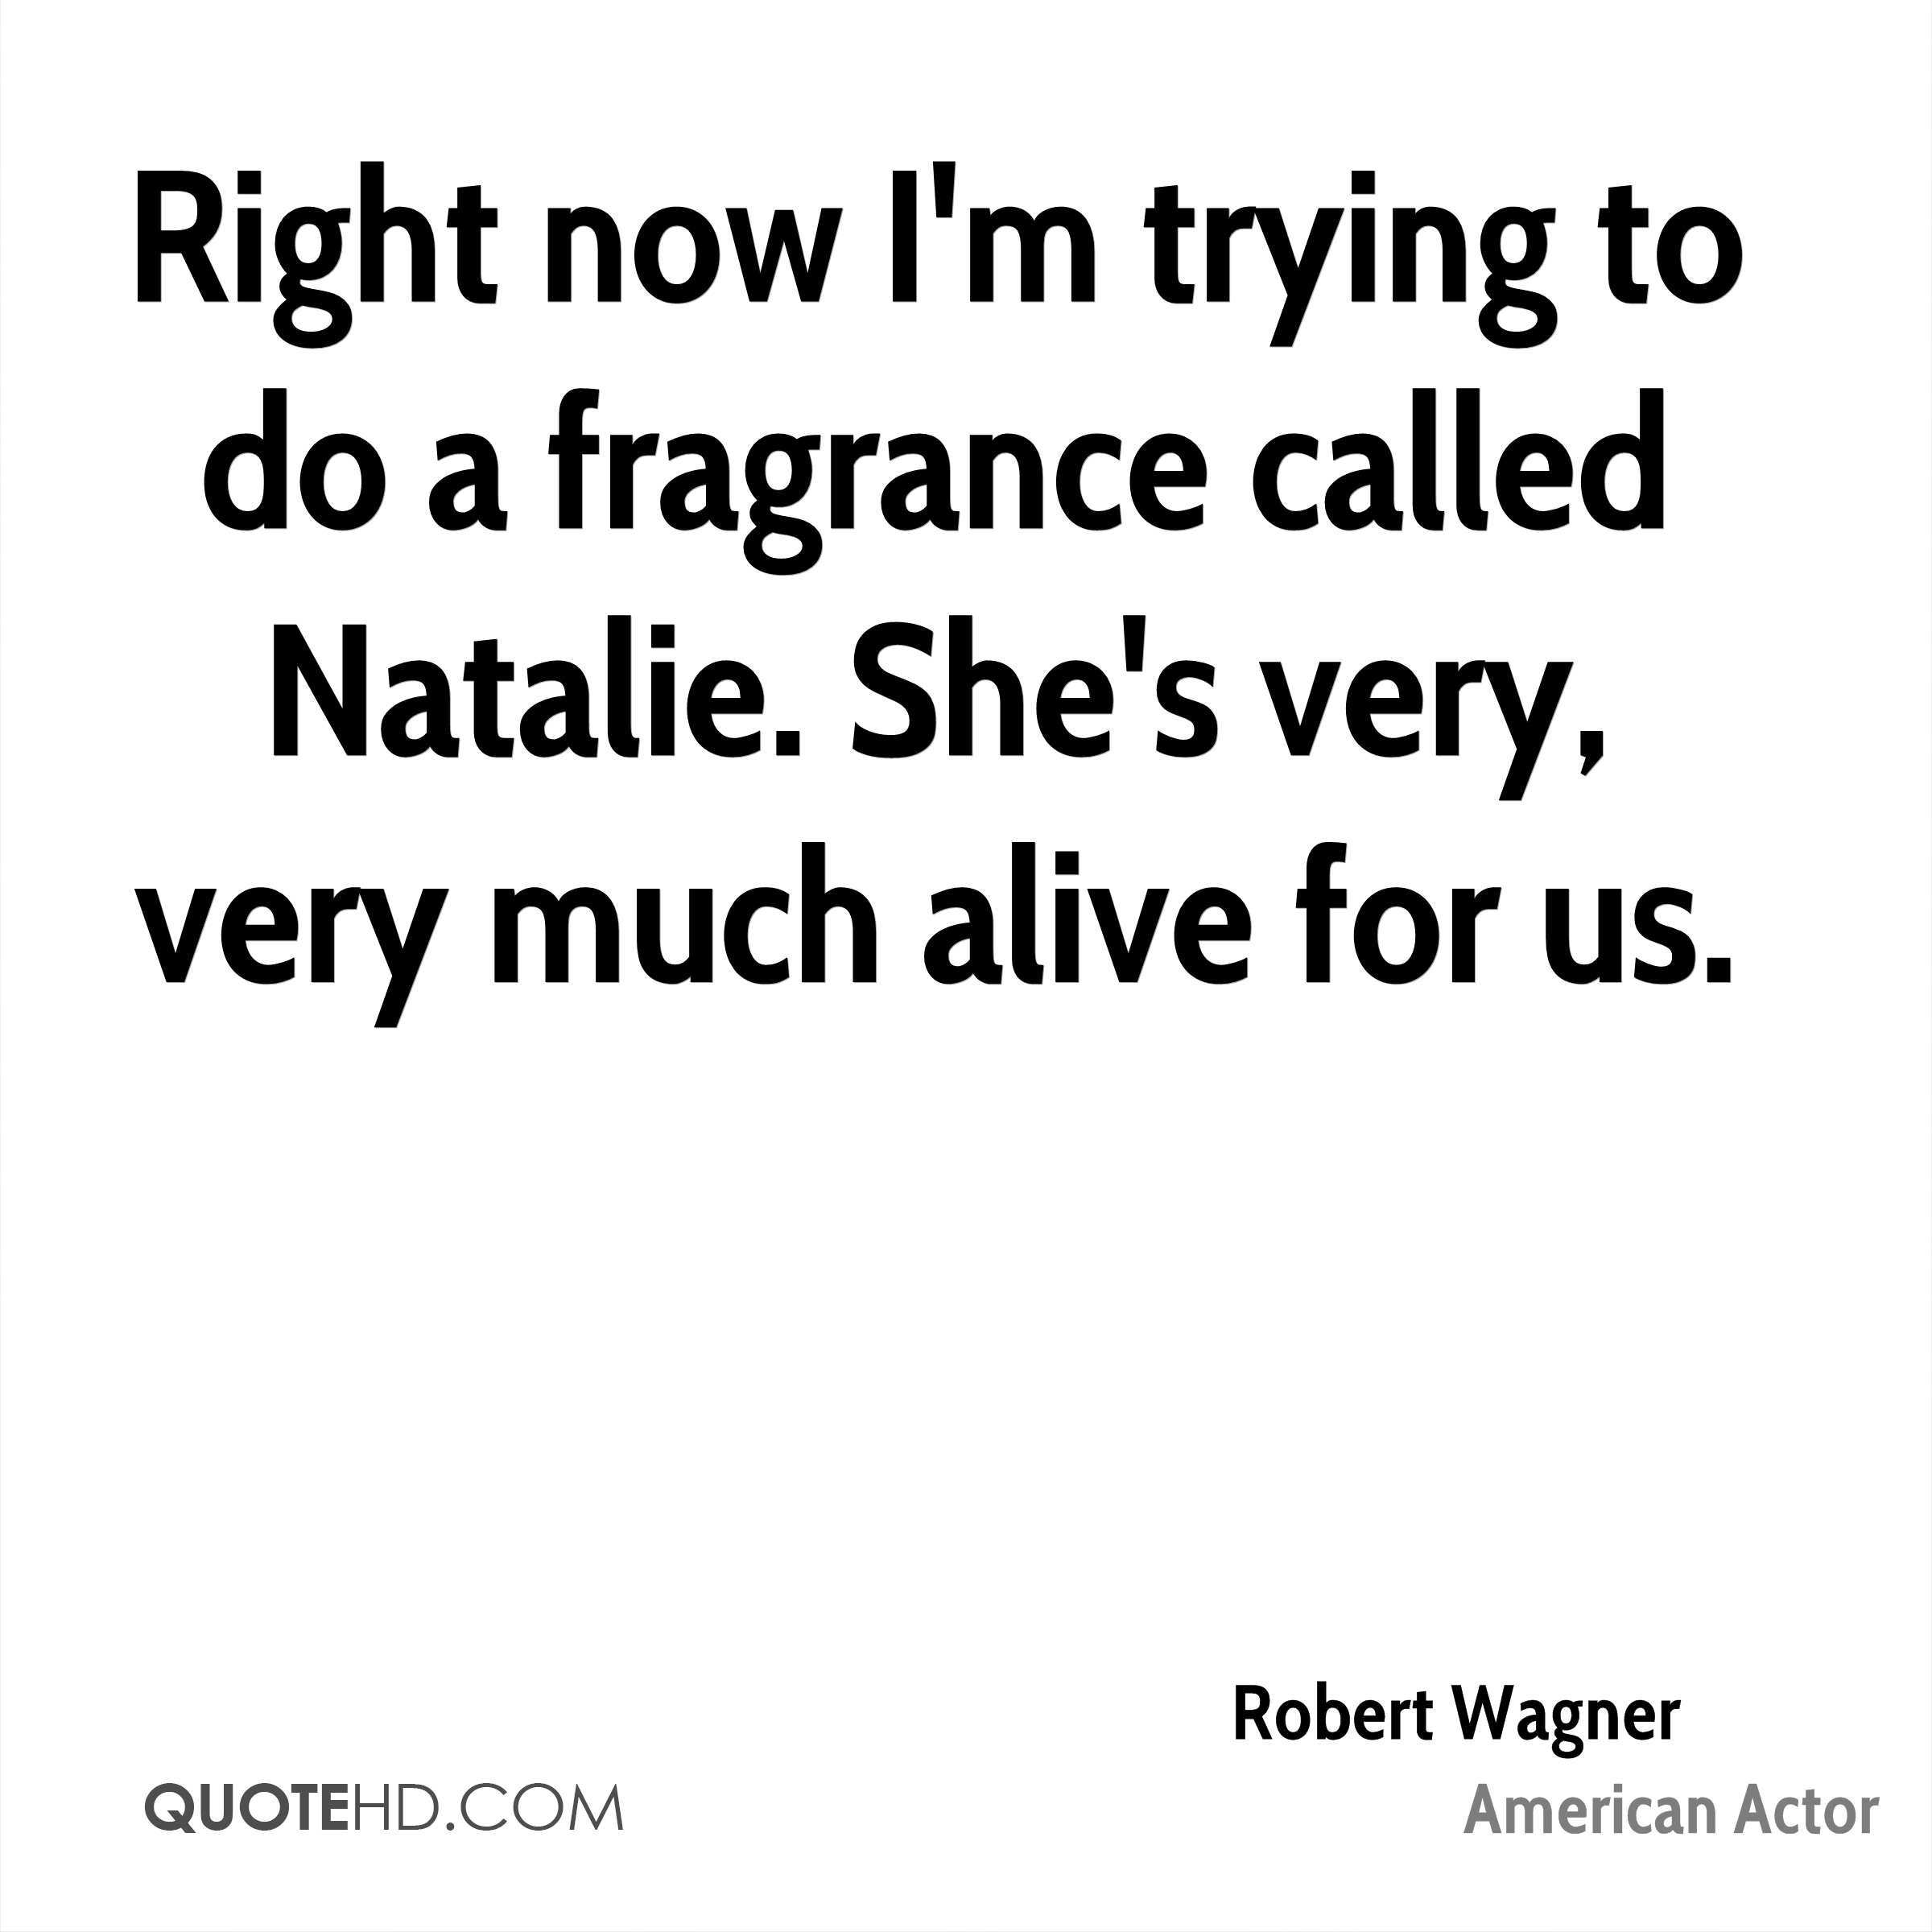 Right now I'm trying to do a fragrance called Natalie. She's very, very much alive for us.